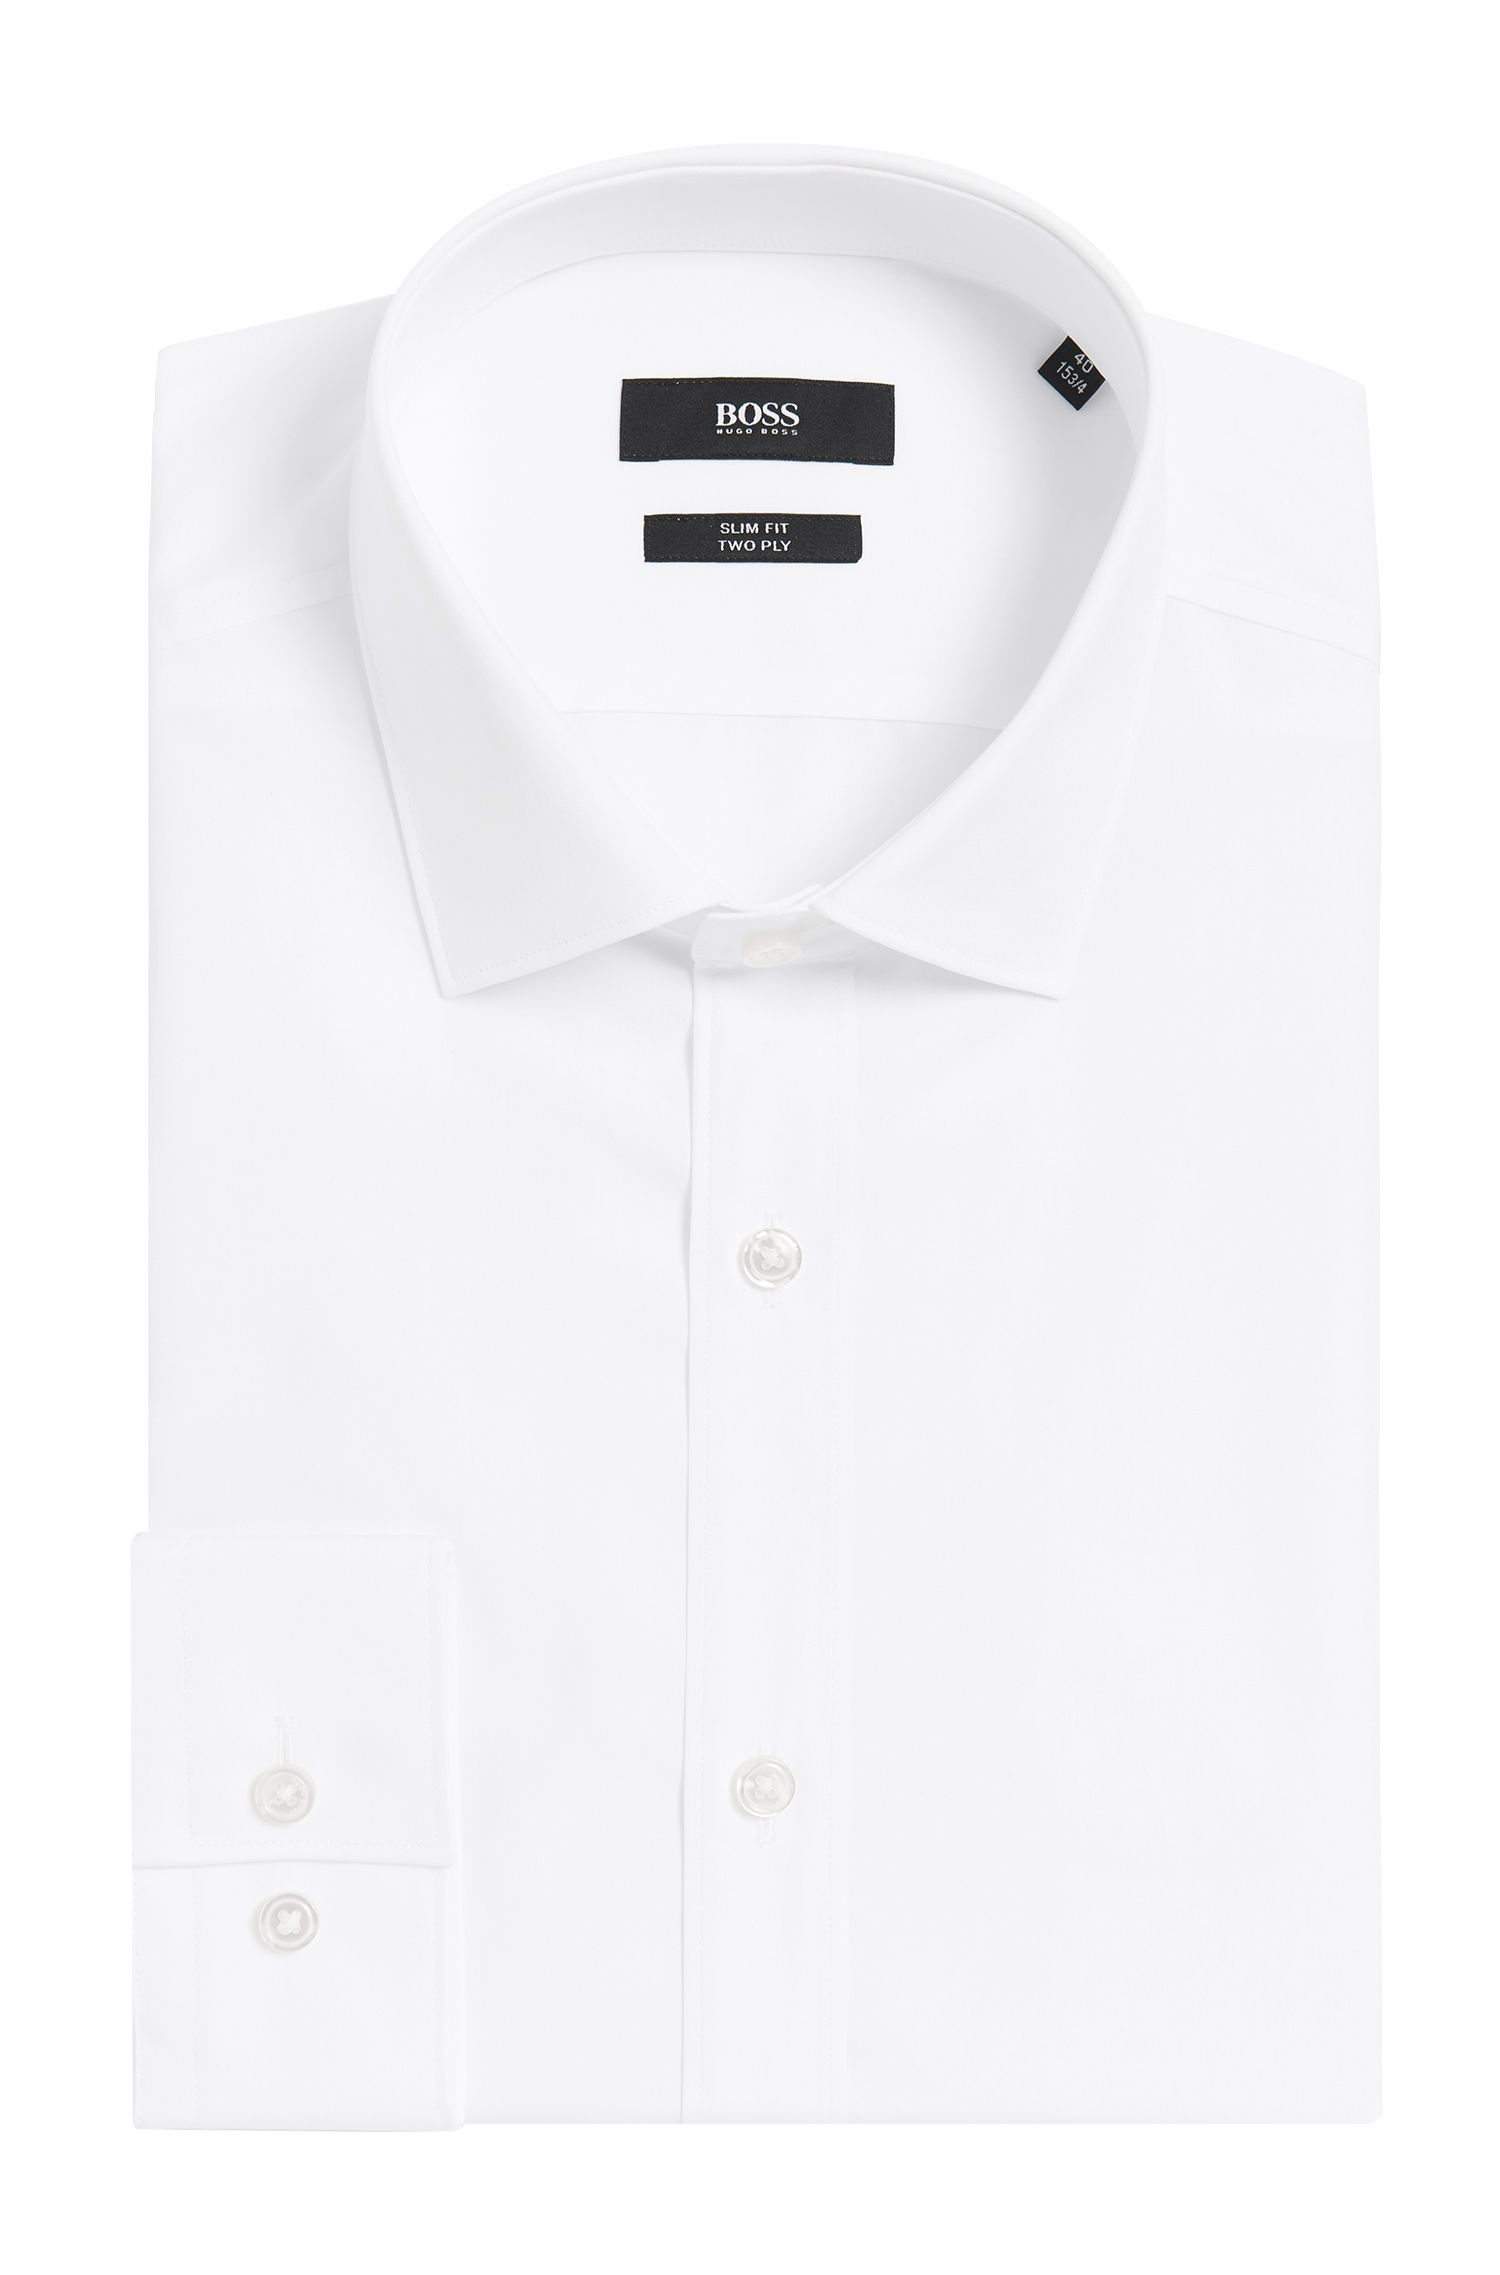 'Isaak' | Slim Fit, 2-Ply Italian Cotton Dress Shirt